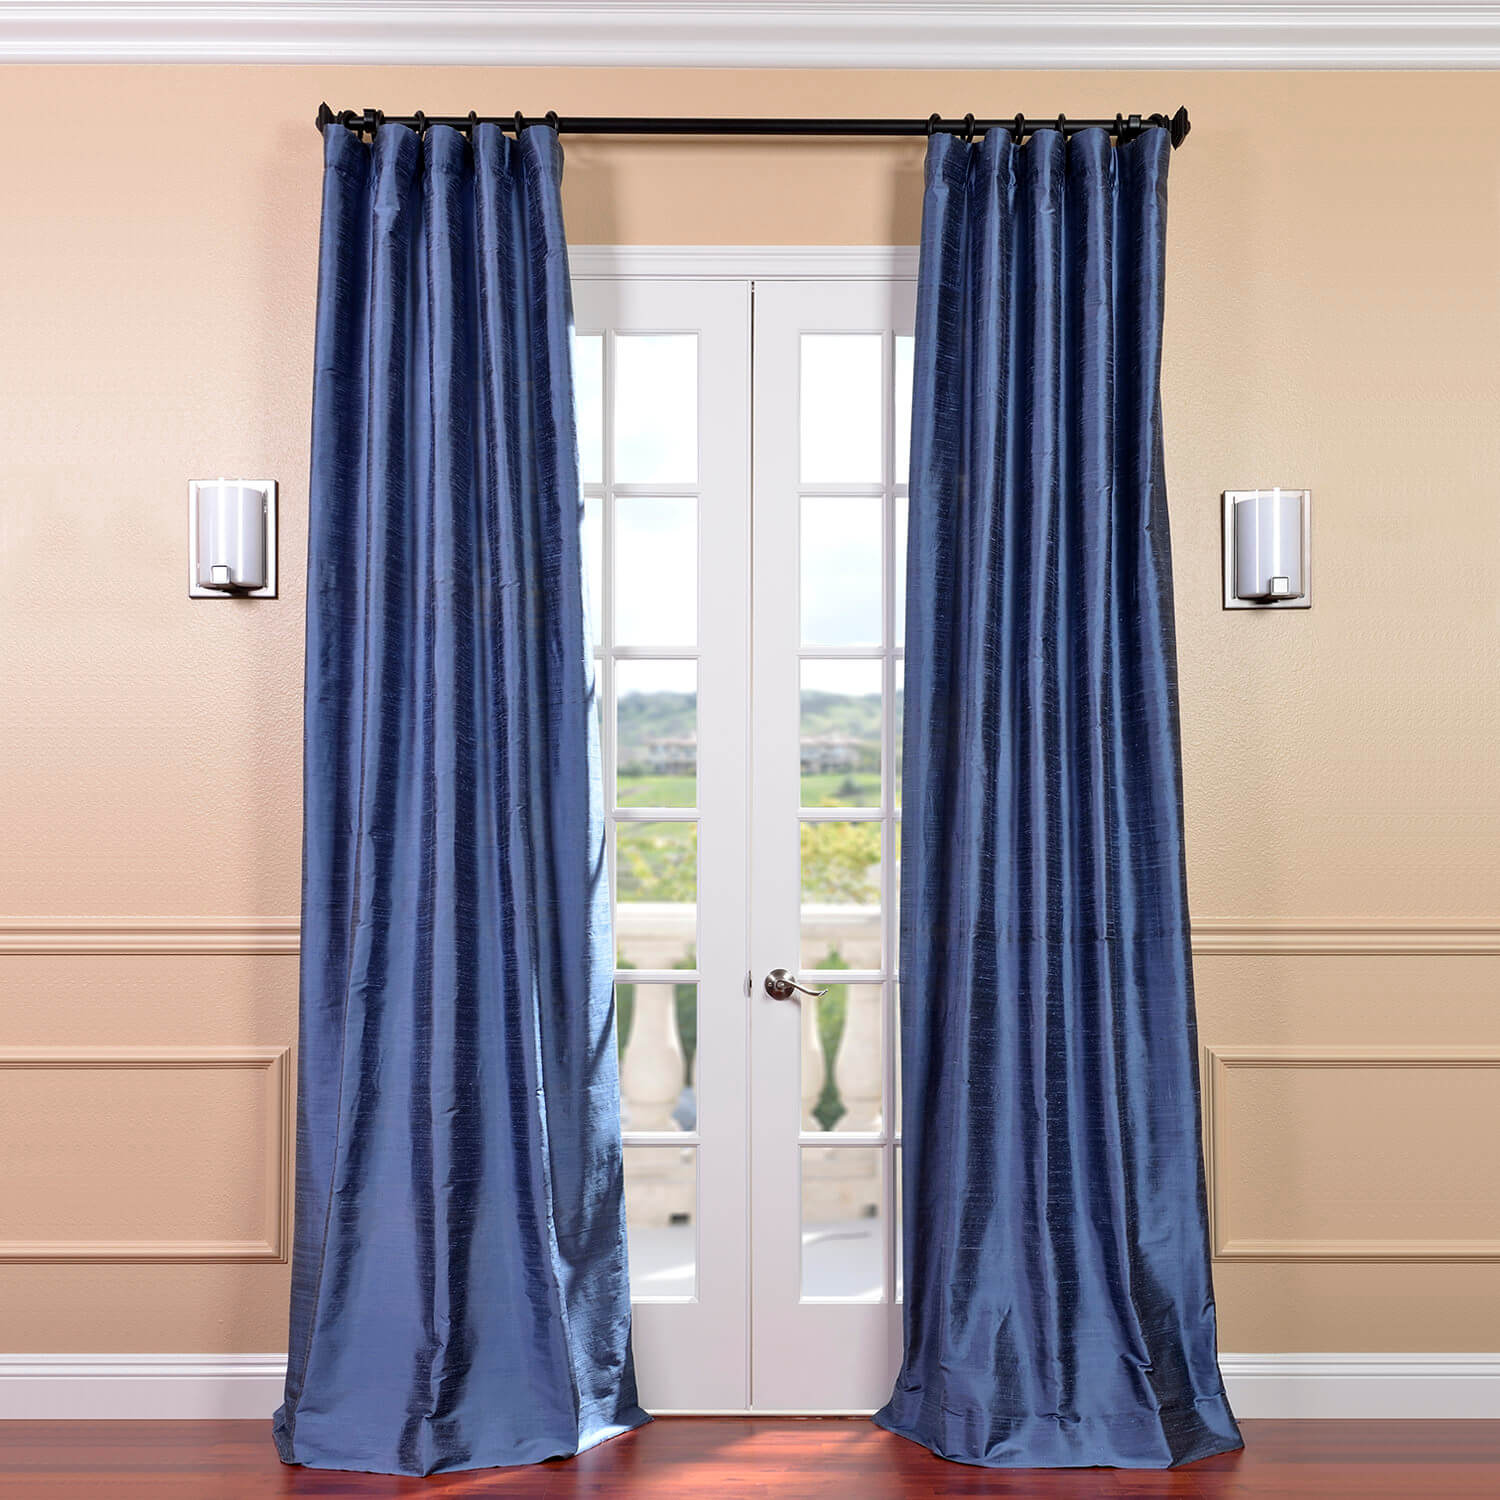 Winter Blue Textured Dupioni Silk Curtain